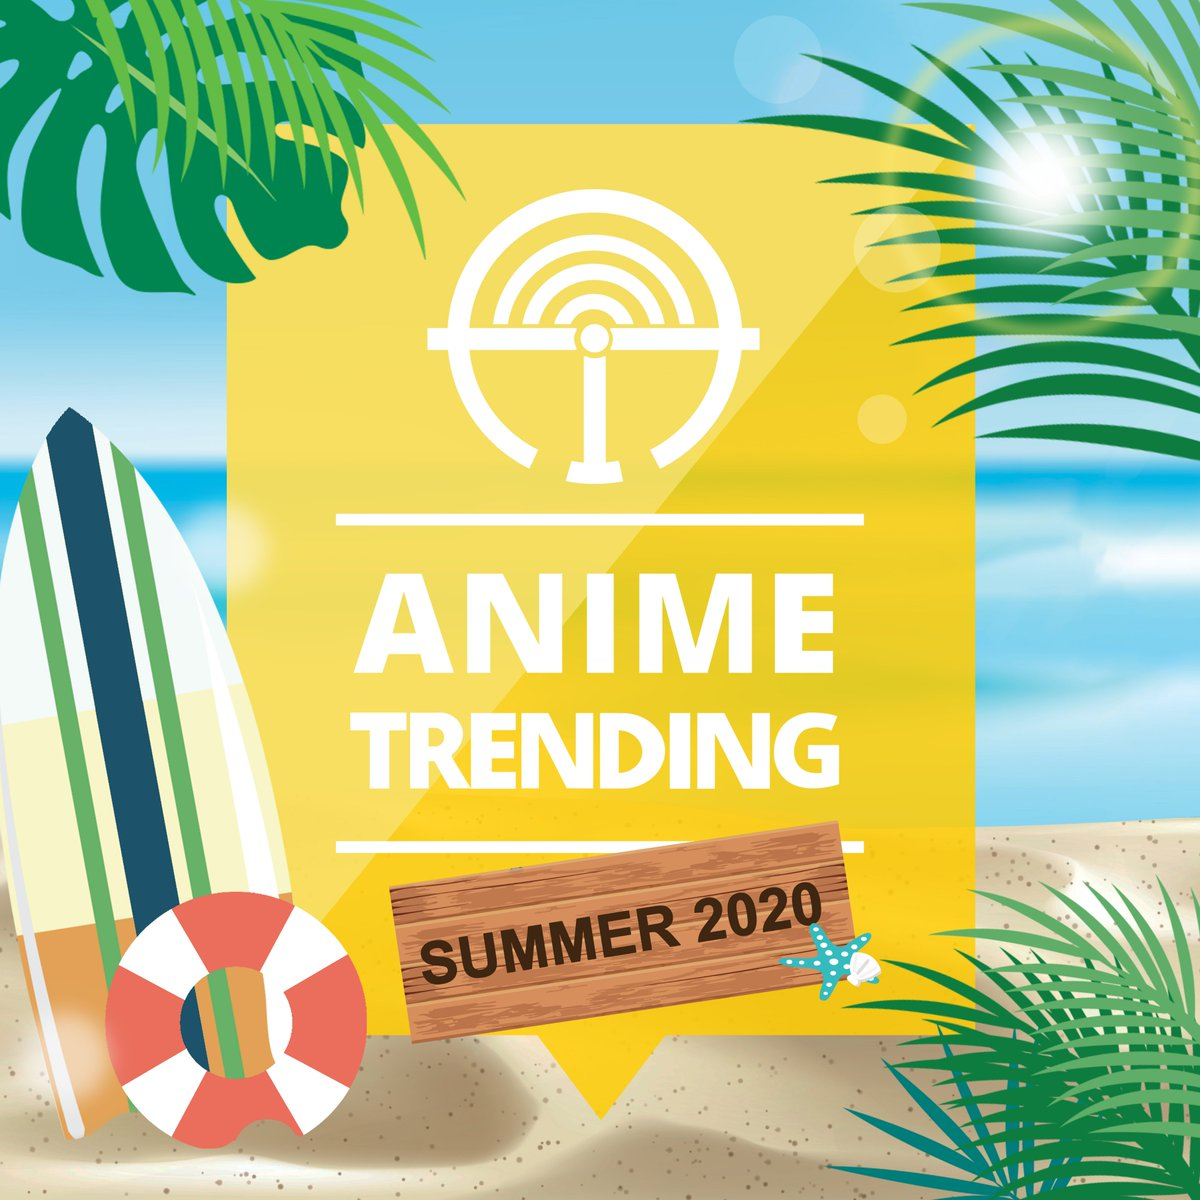 New season. New profile picture! Welcome to the Summer 2020 anime season! 🏄‍♂️